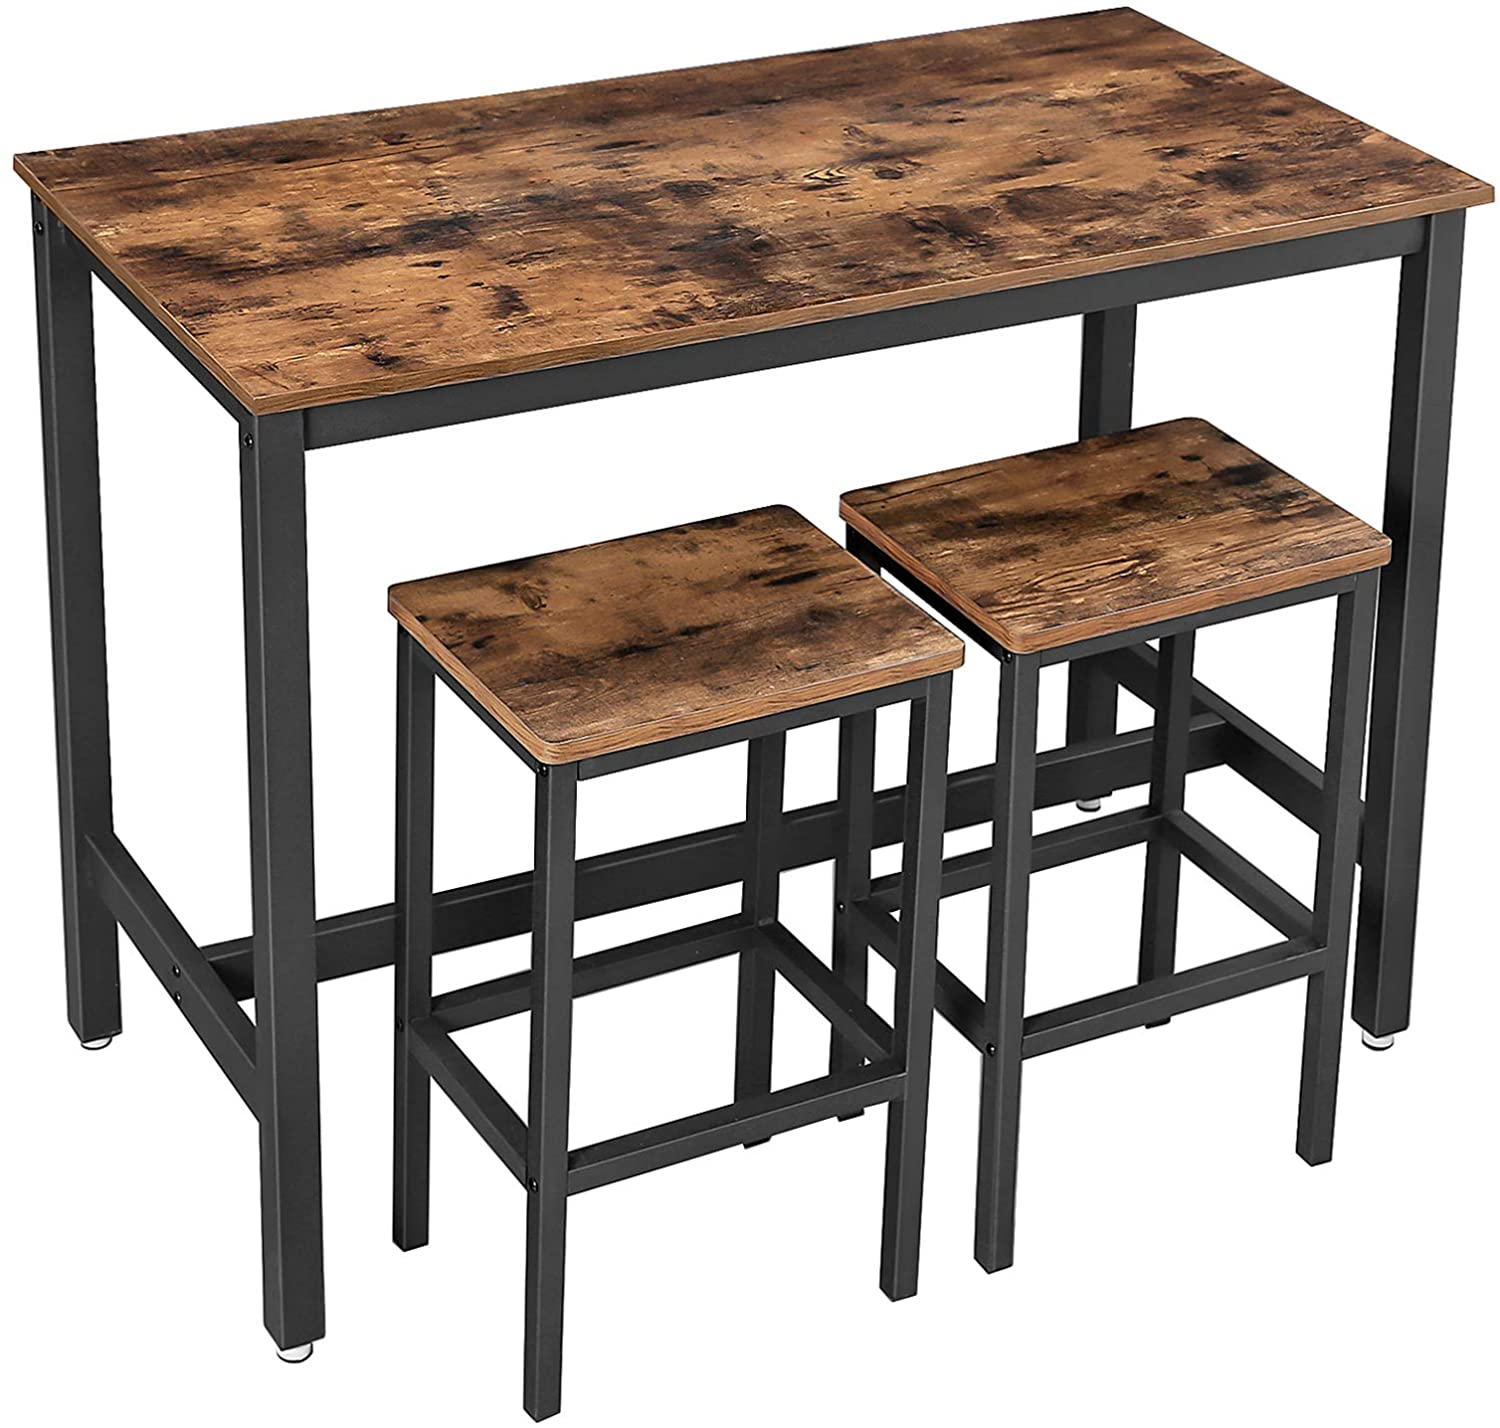 Enjoy fast, free nationwide shipping!  Owned by a husband and wife team of high-school music teachers, HawkinsWoodshop.com is your one stop shop for affordable furniture.  Shop HawkinsWoodshop.com for solid wood & metal modern, traditional, contemporary, industrial, custom, rustic, and farmhouse furniture including our Ryan Industrial Farmhouse Bar Table w/ 2 Stools.